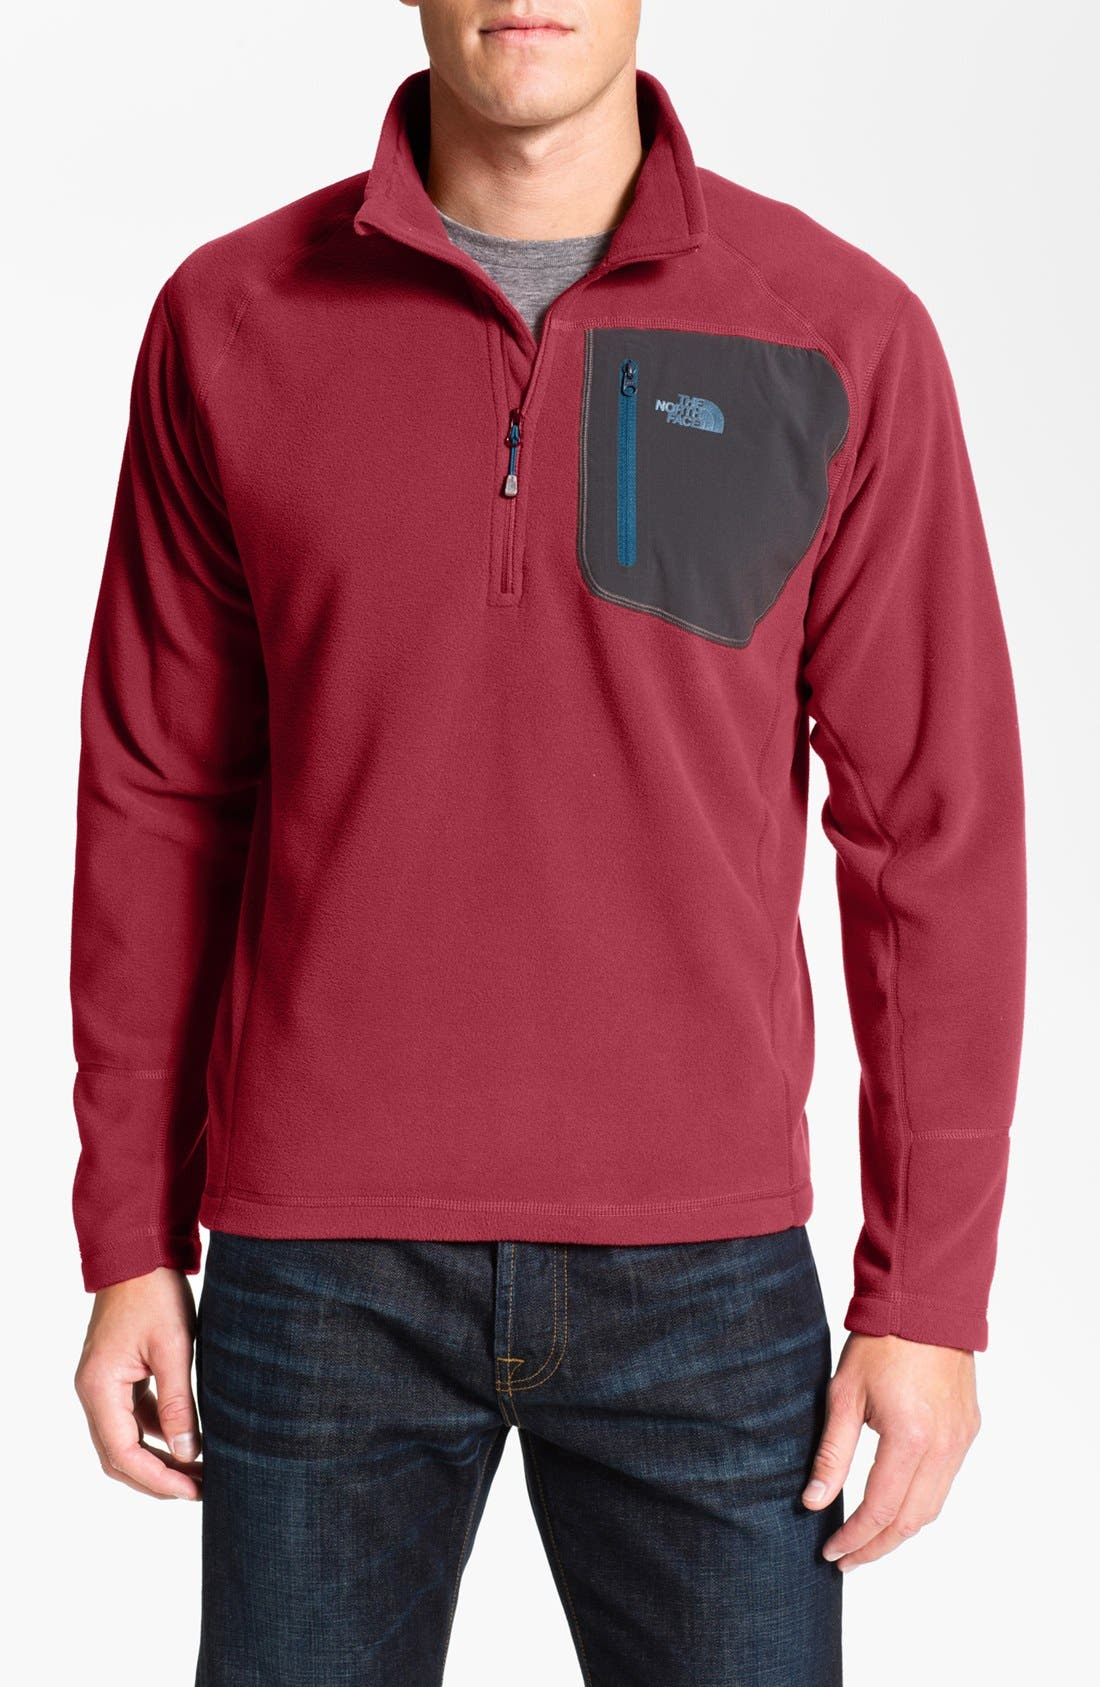 Main Image - The North Face 'TKA 100 Trinity Alps' Fleece Quarter Zip Pullover